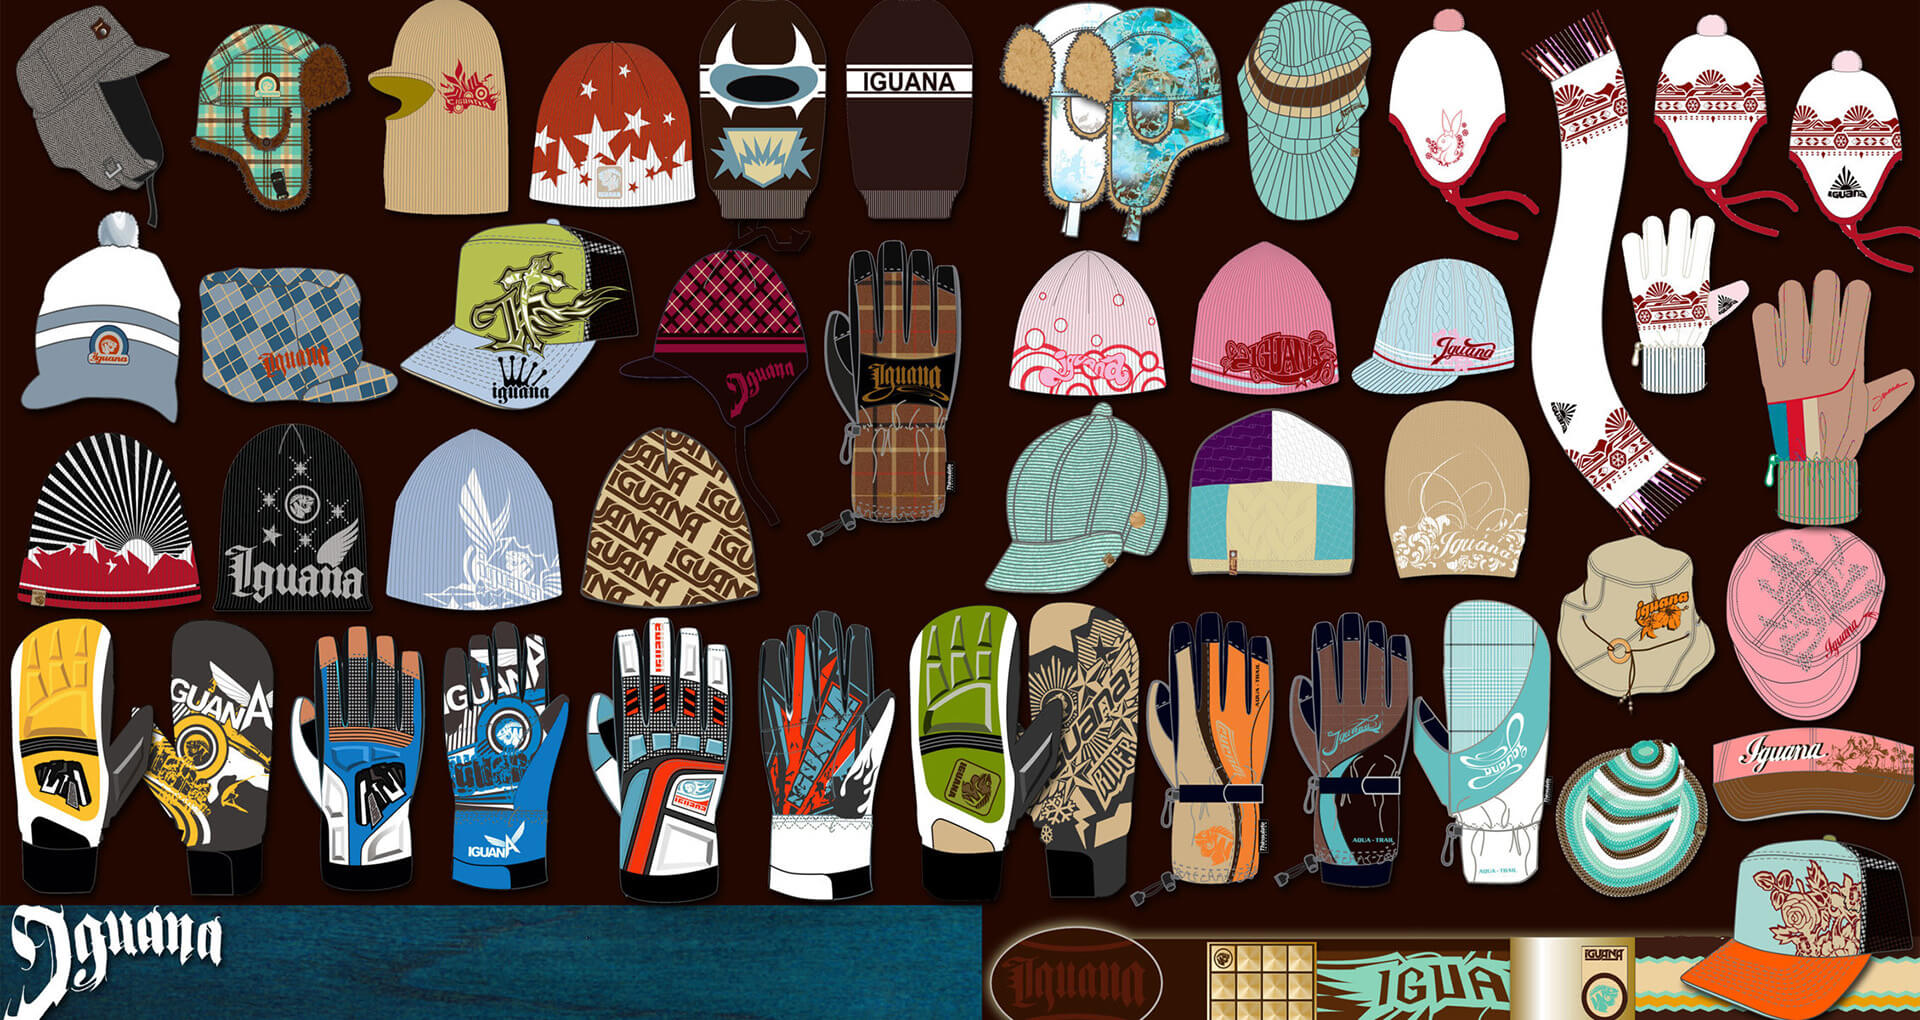 product design snowboards surfbaords hats gloves bags shoes sandals 7